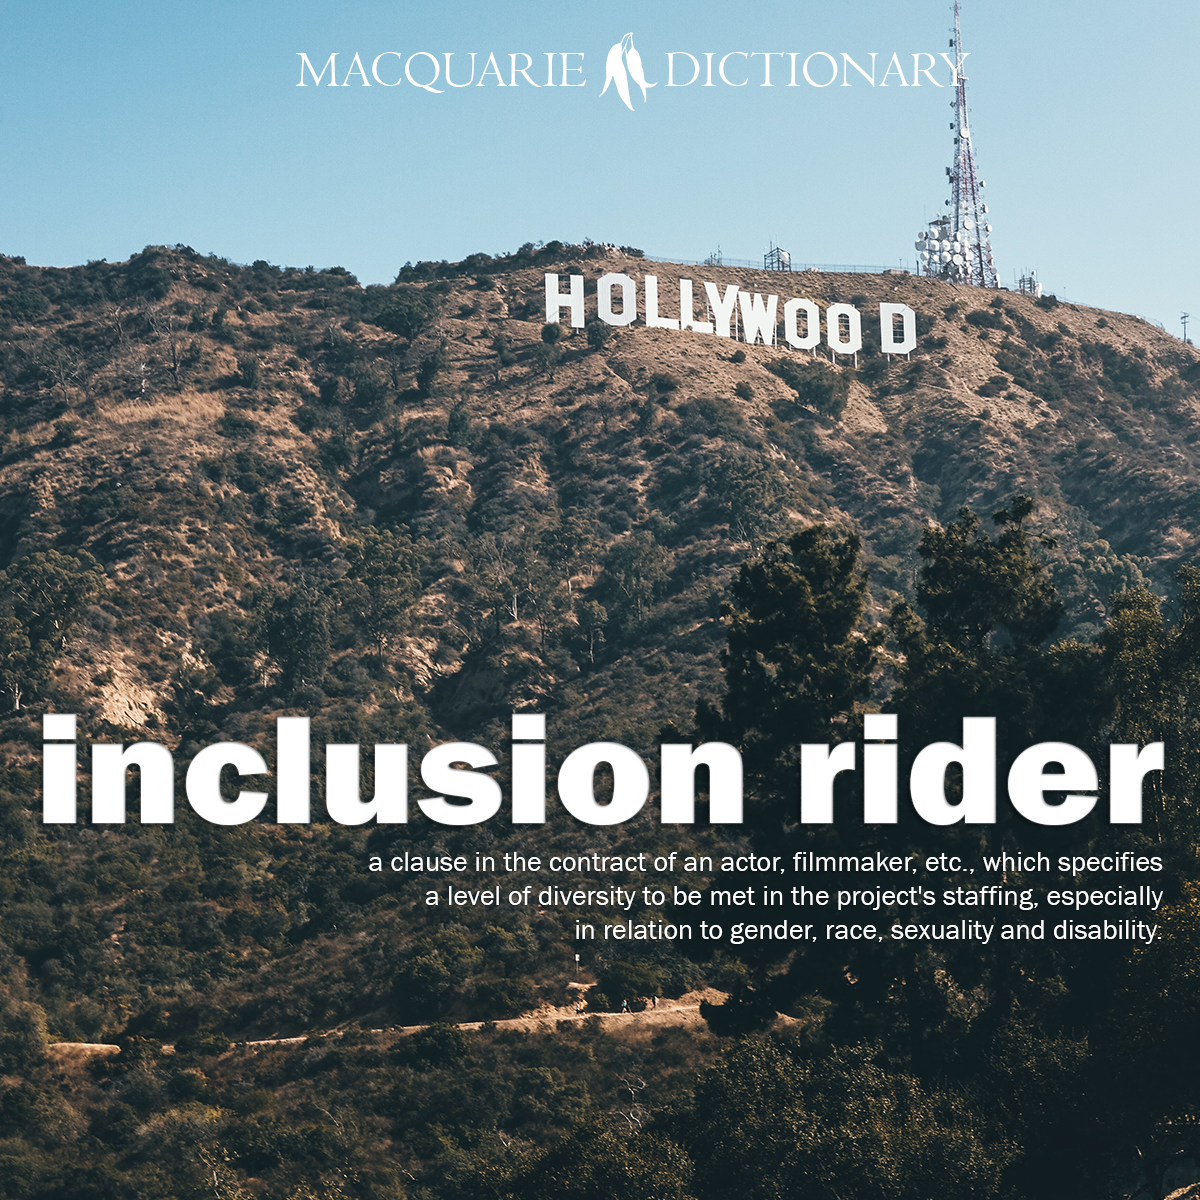 inclusion rider - a clause in the contract of an actor, filmmaker, etc., which specifies a level of diversity to be met in the project's staffing, especially in relation to gender, race, sexuality and disability.